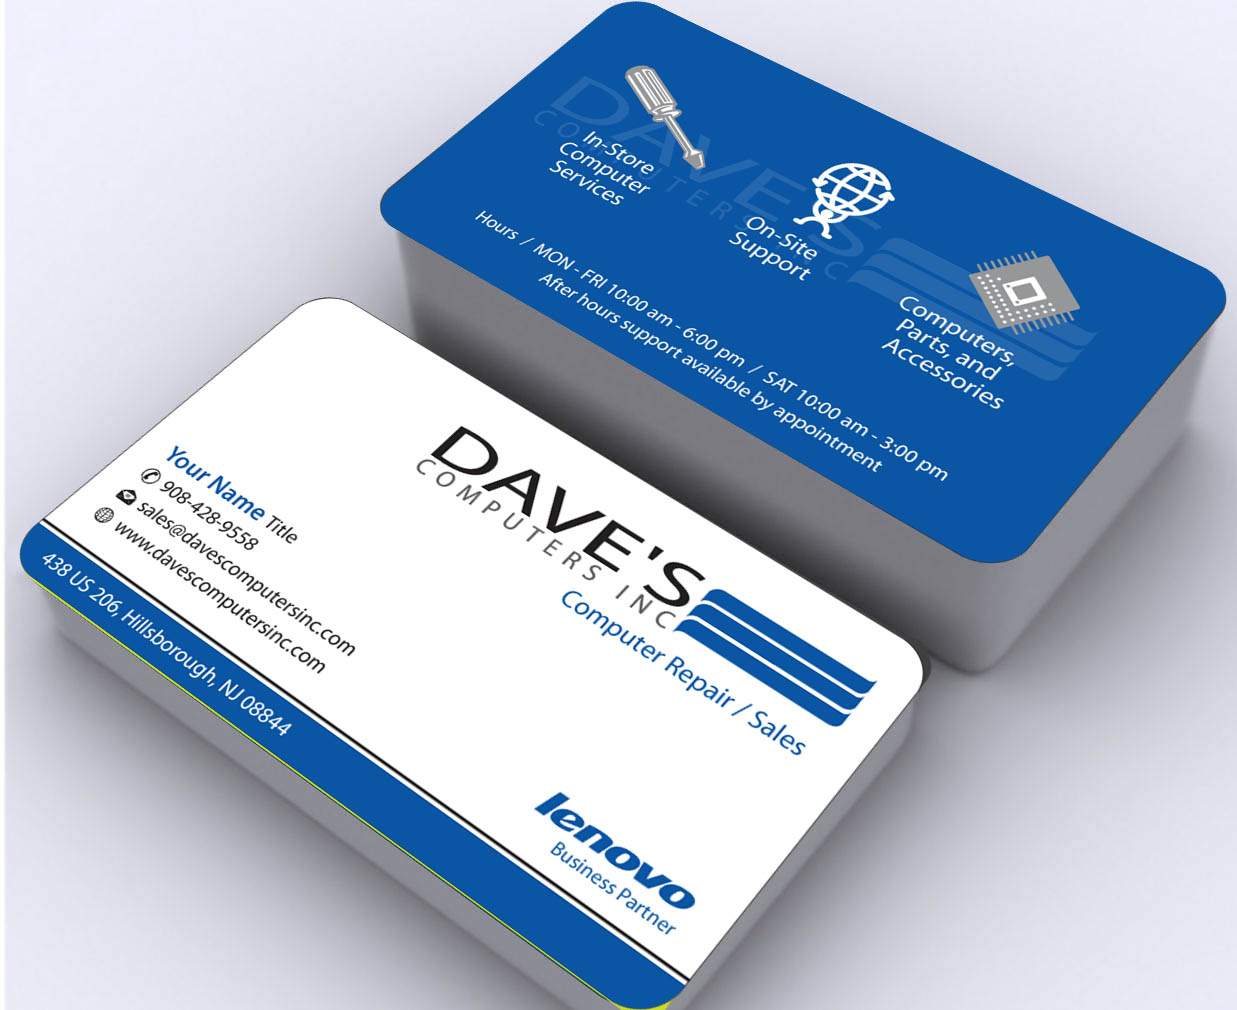 Business Business Card Design for David Molnar by Sbss   Design #4253834